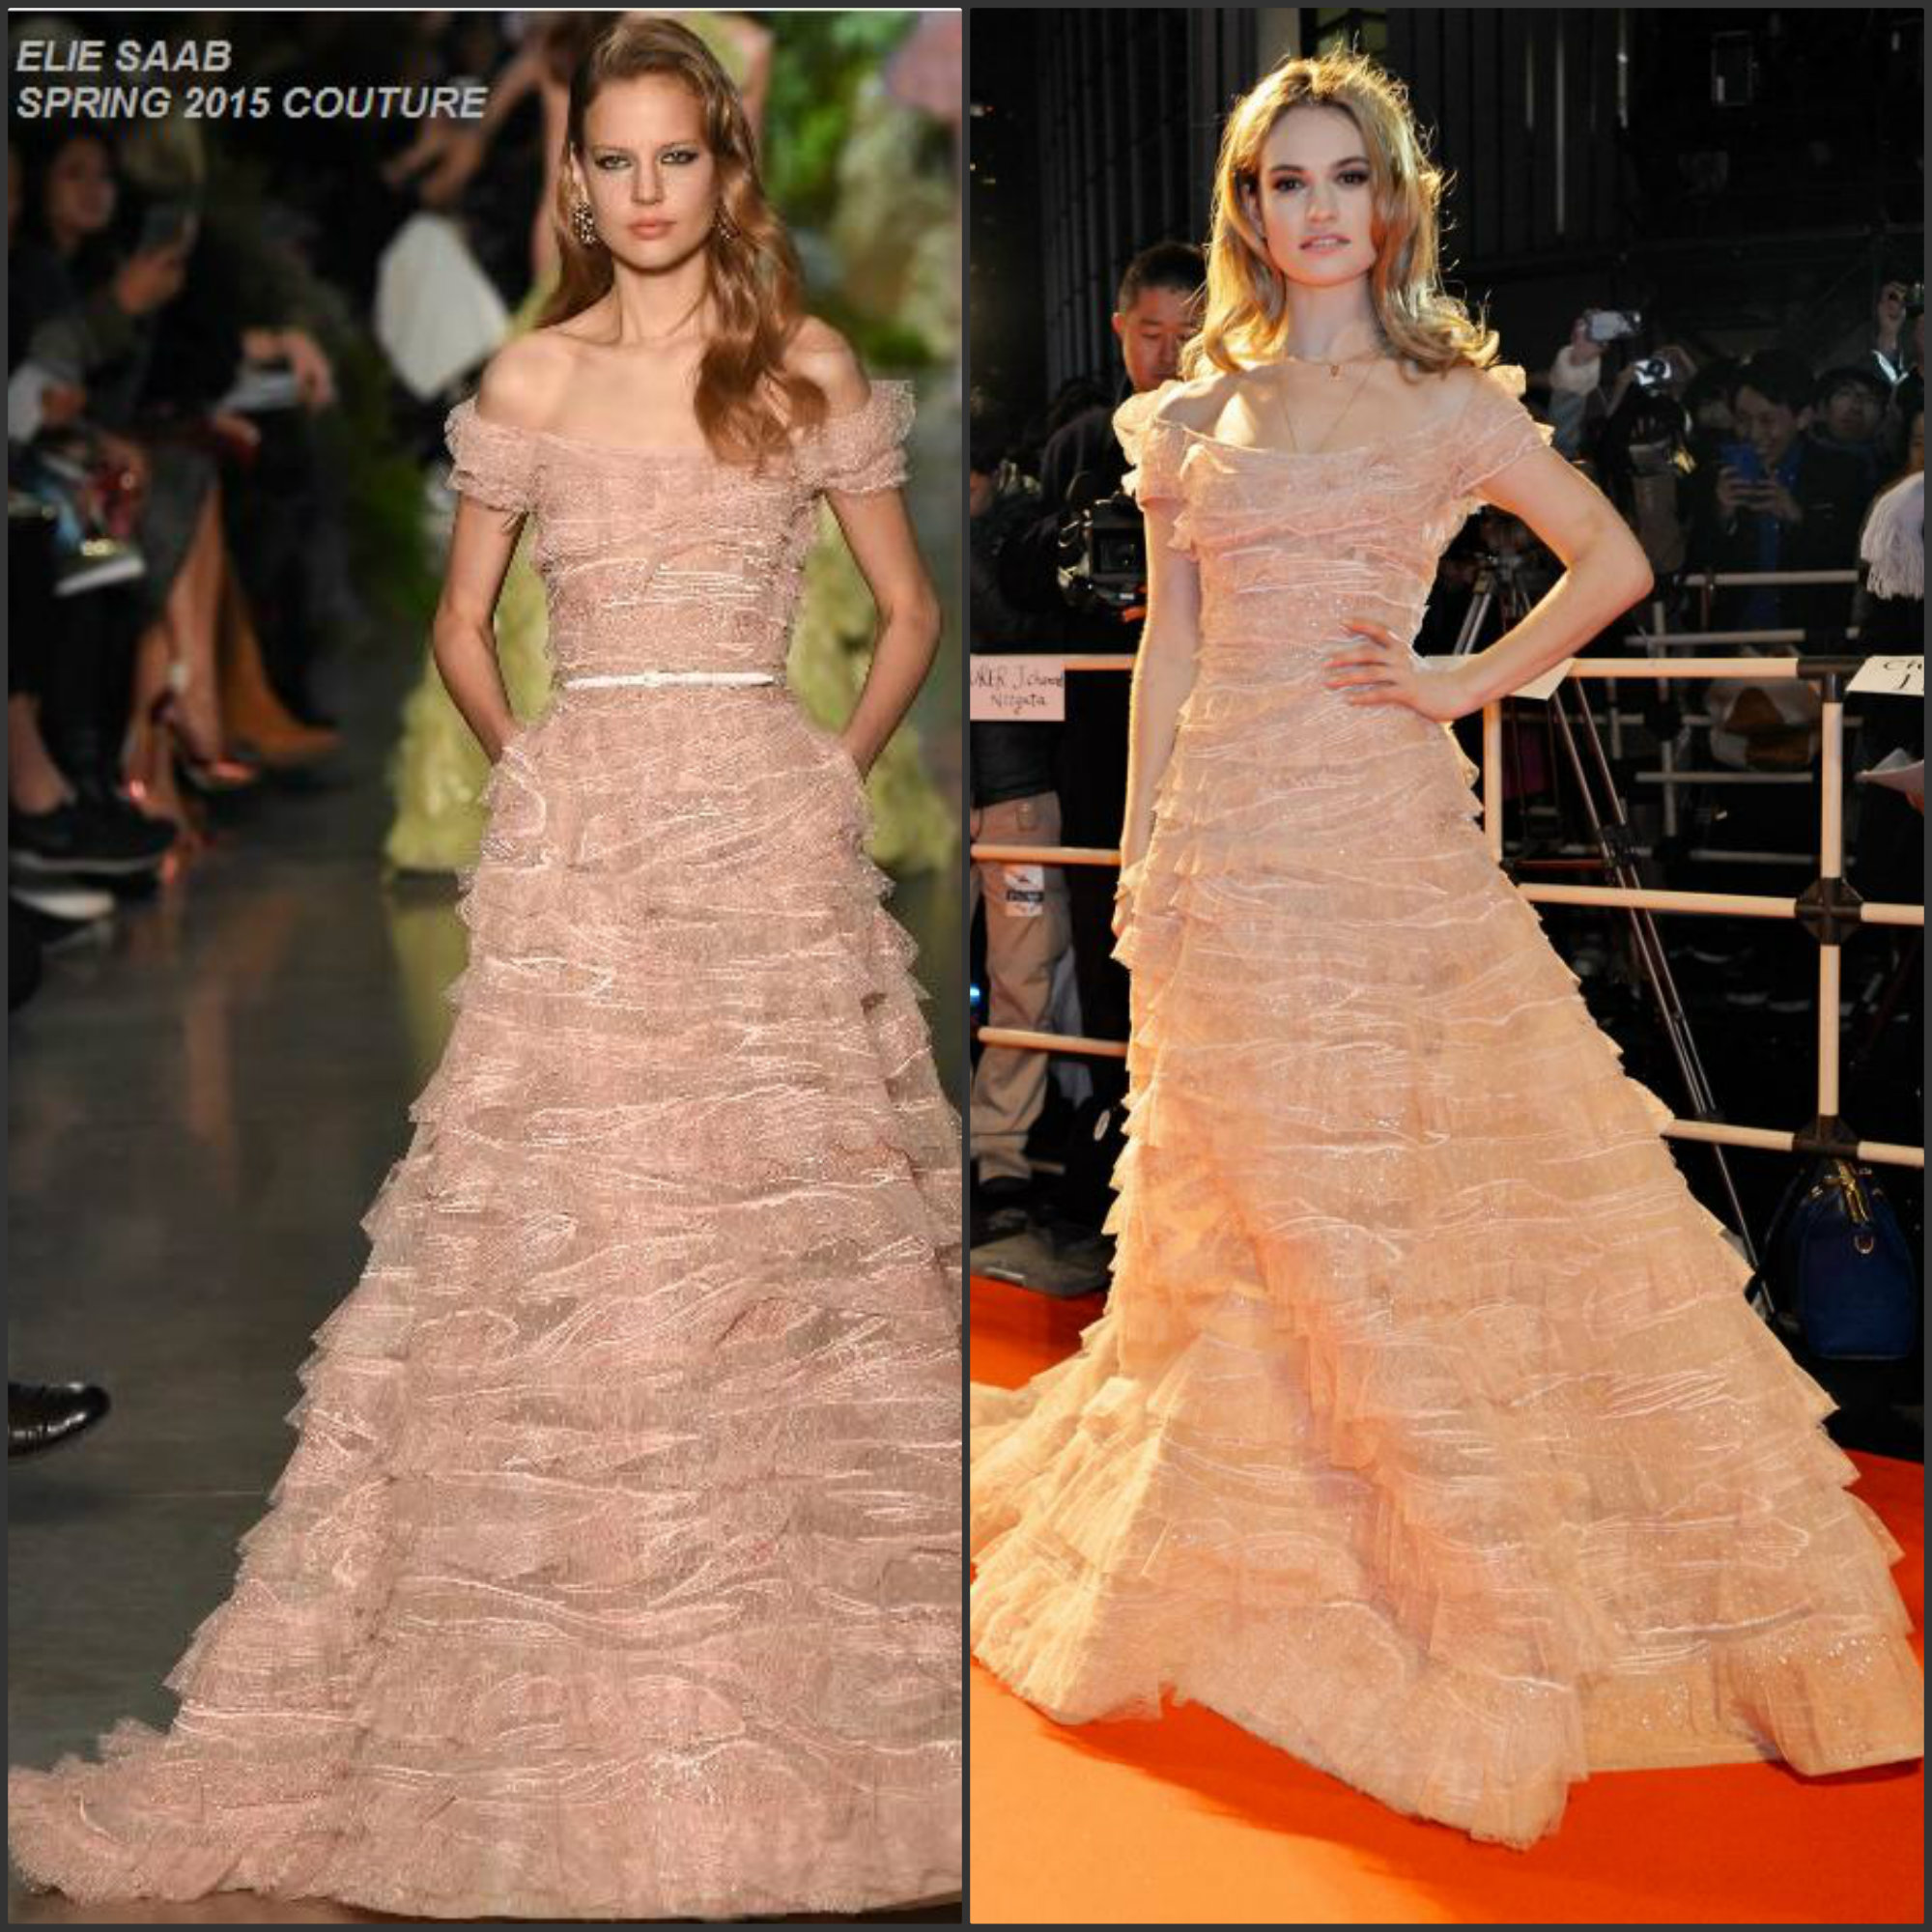 Lily-James-in-Elie-Saab-Couture-at-the-Cinderella-Tokyo-Premiere